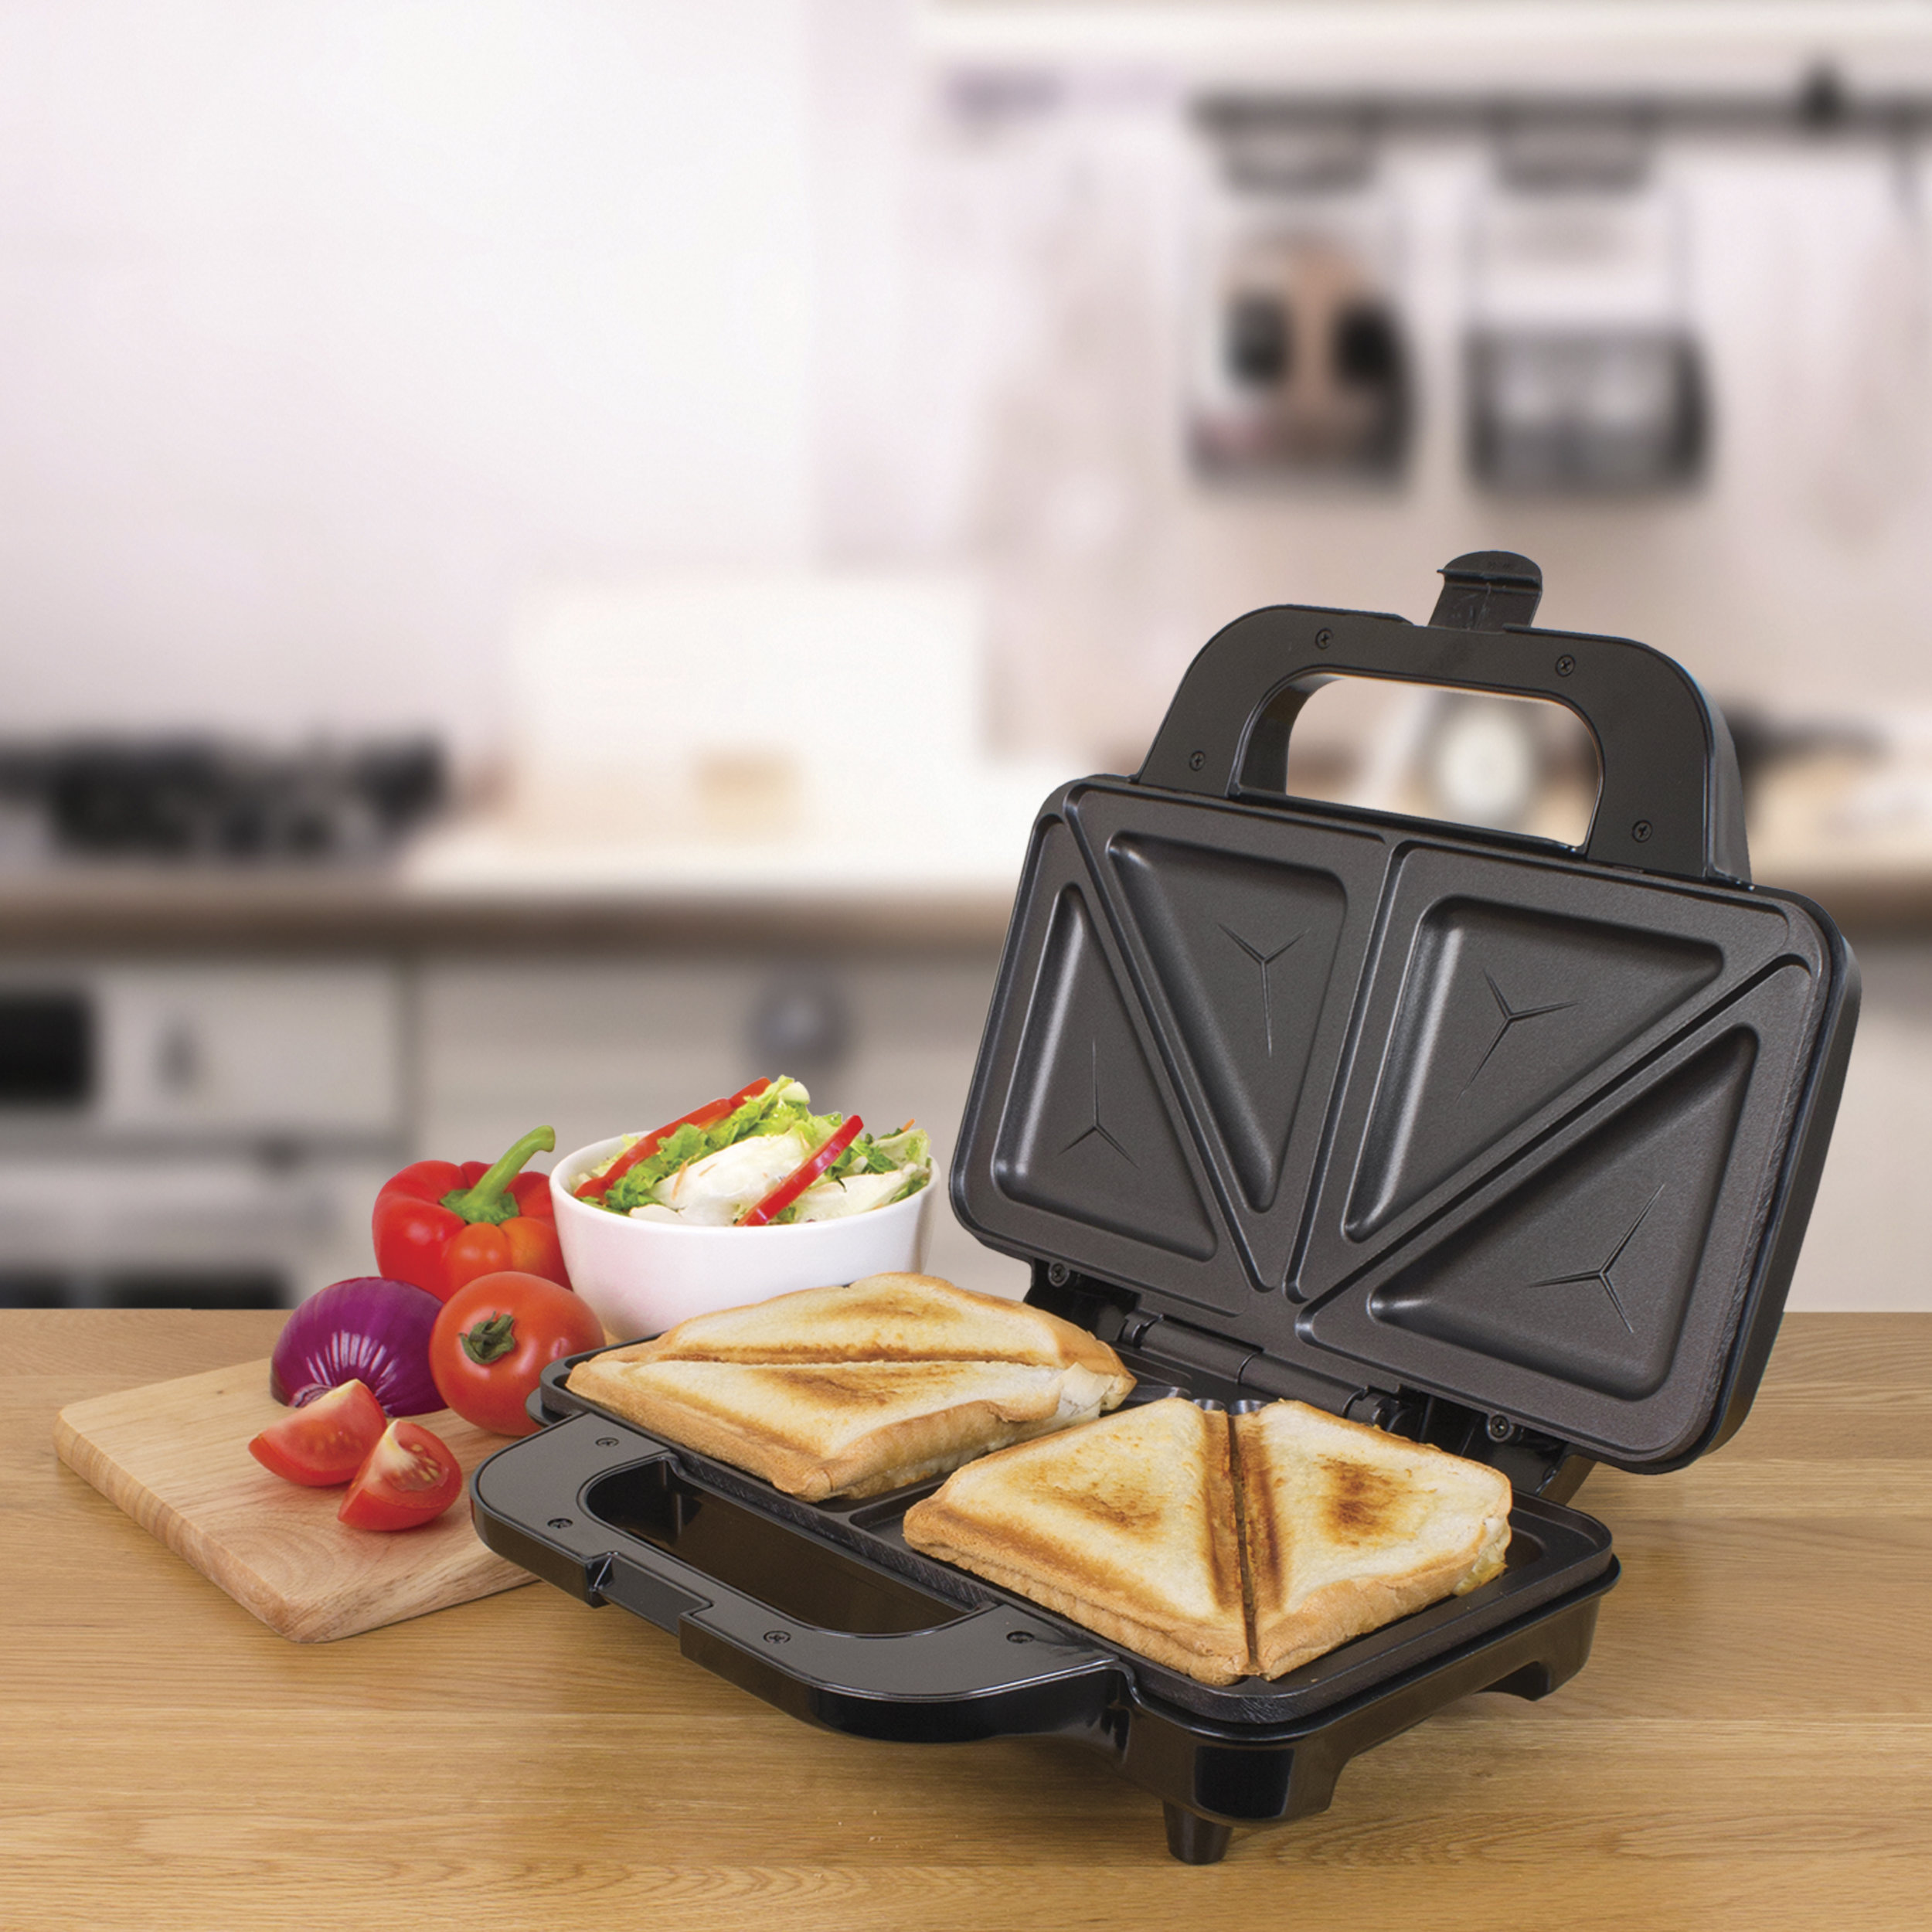 Deep Fill Sandwich Toaster - No oil required, non-stick plates, seal the contents of your sandwich producing the perfect easy to remove toast each time!